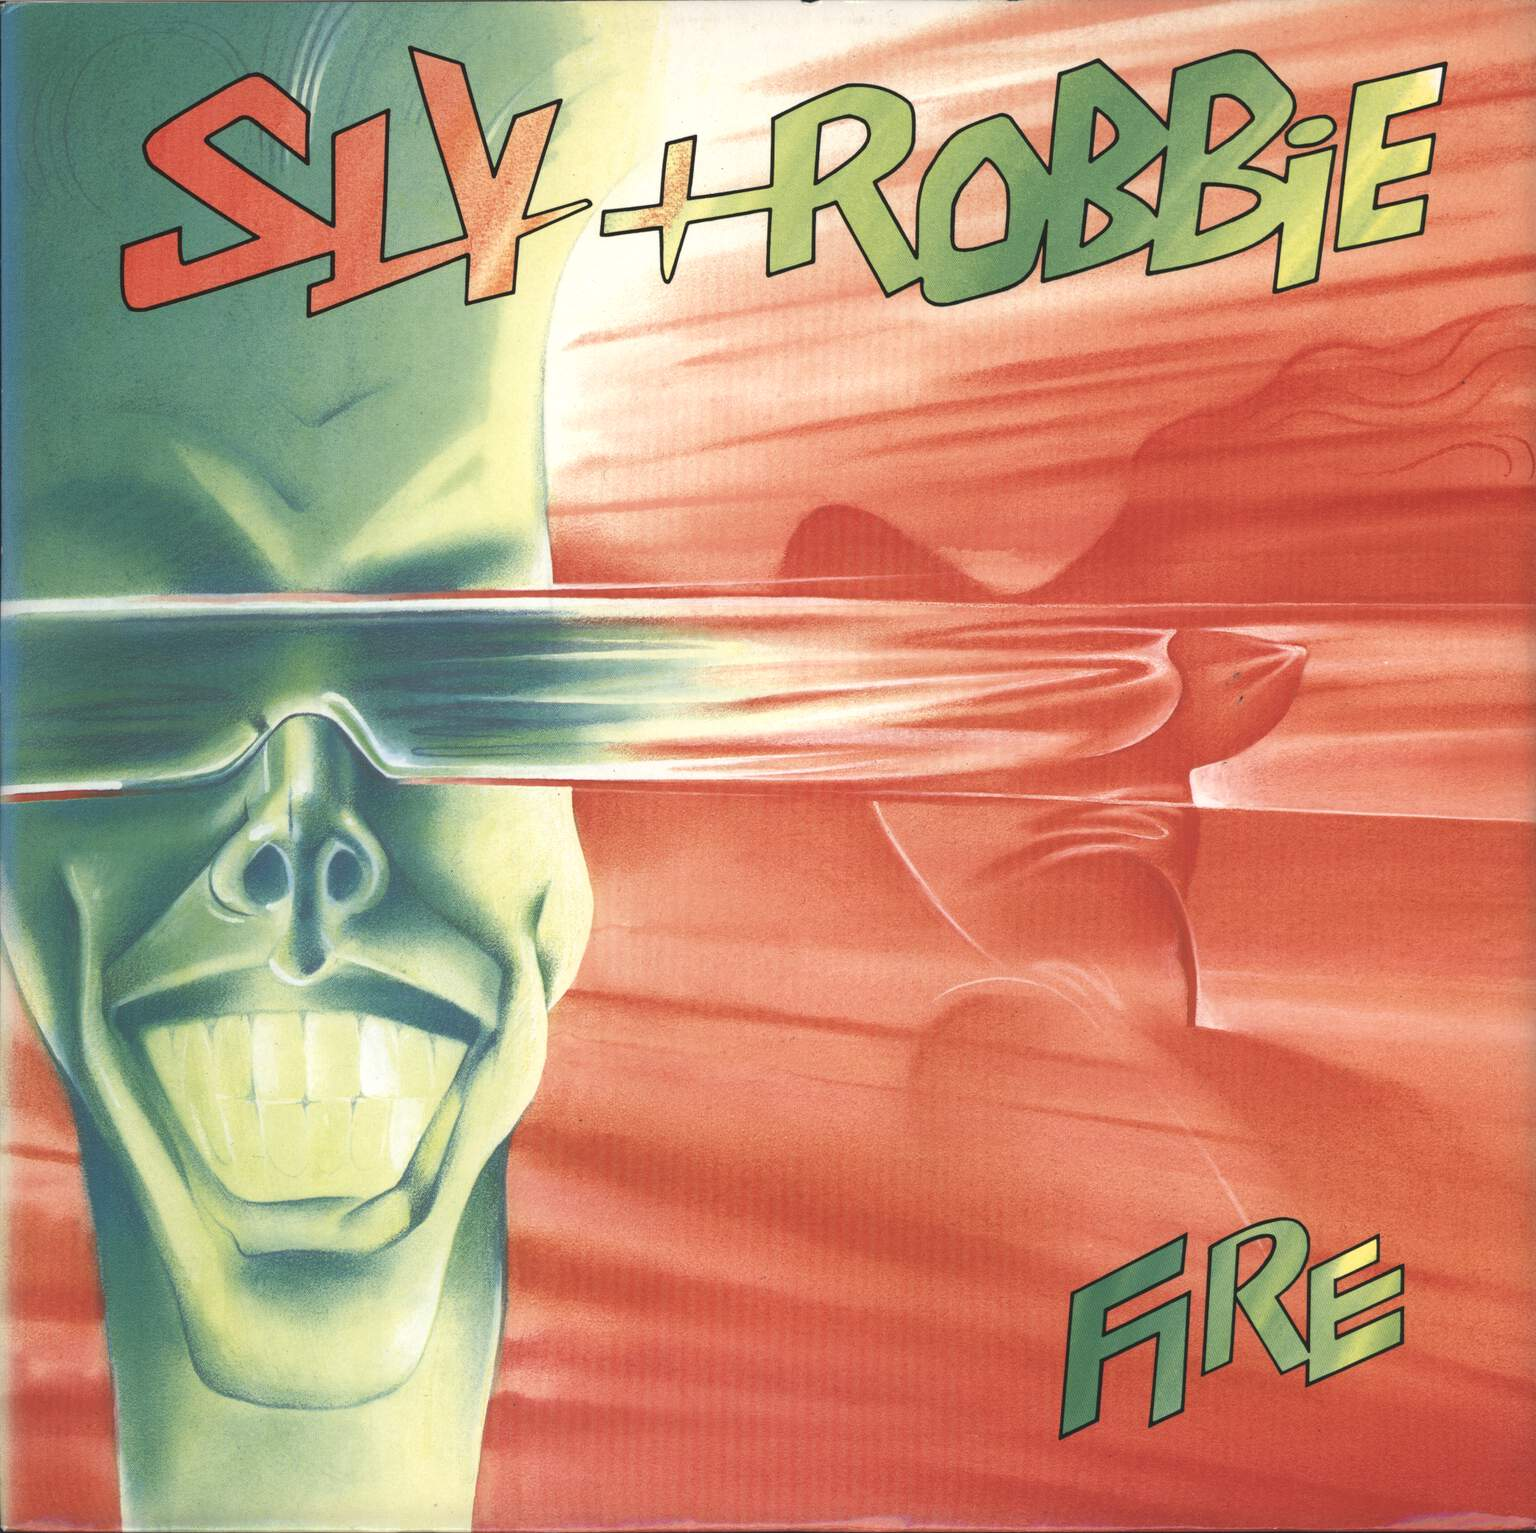 "Sly + Robbie: Fire, 12"" Maxi Single (Vinyl)"